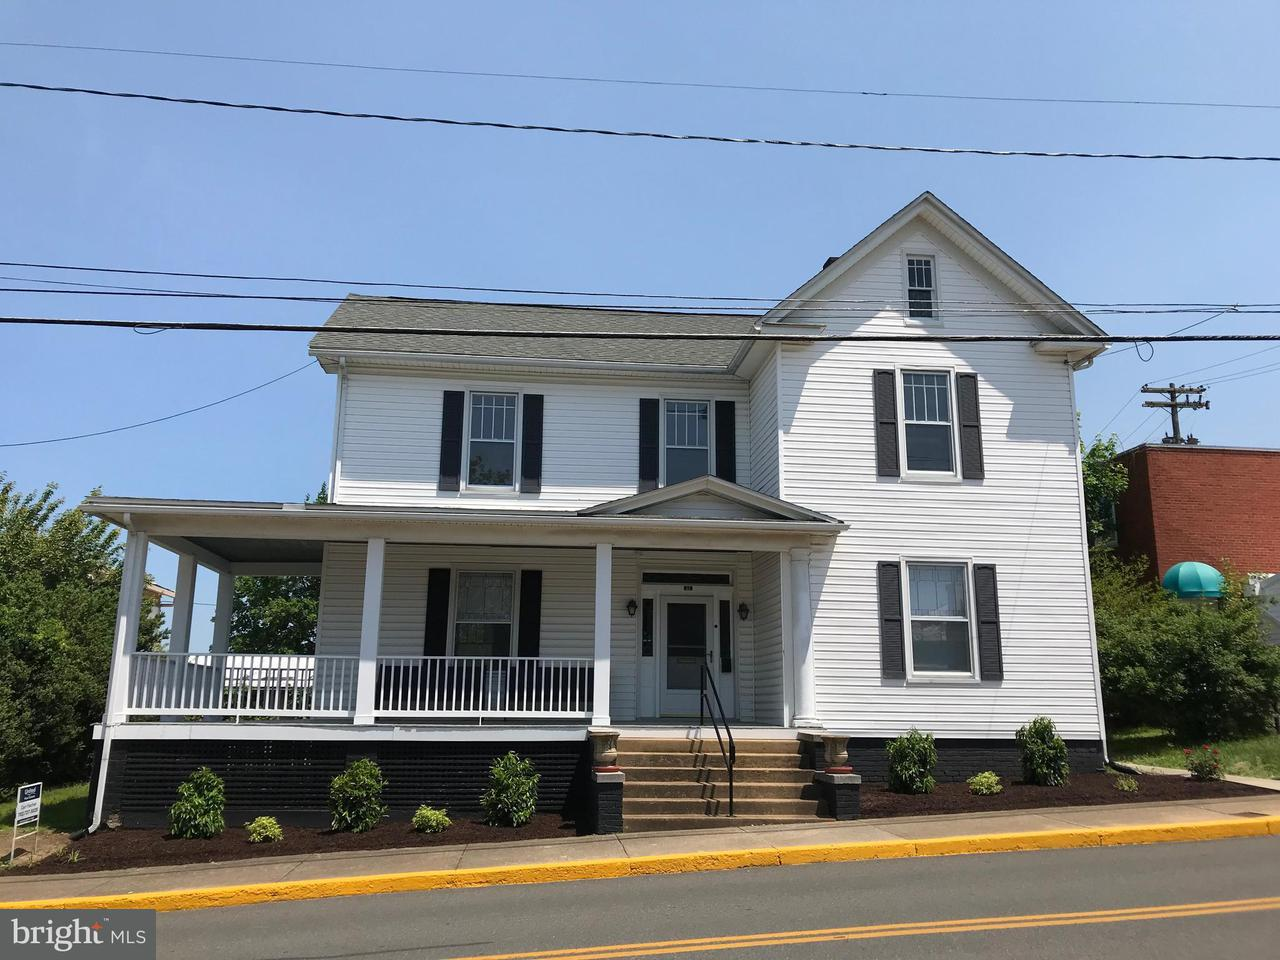 Other Residential for Rent at 11 Court St Luray, Virginia 22835 United States